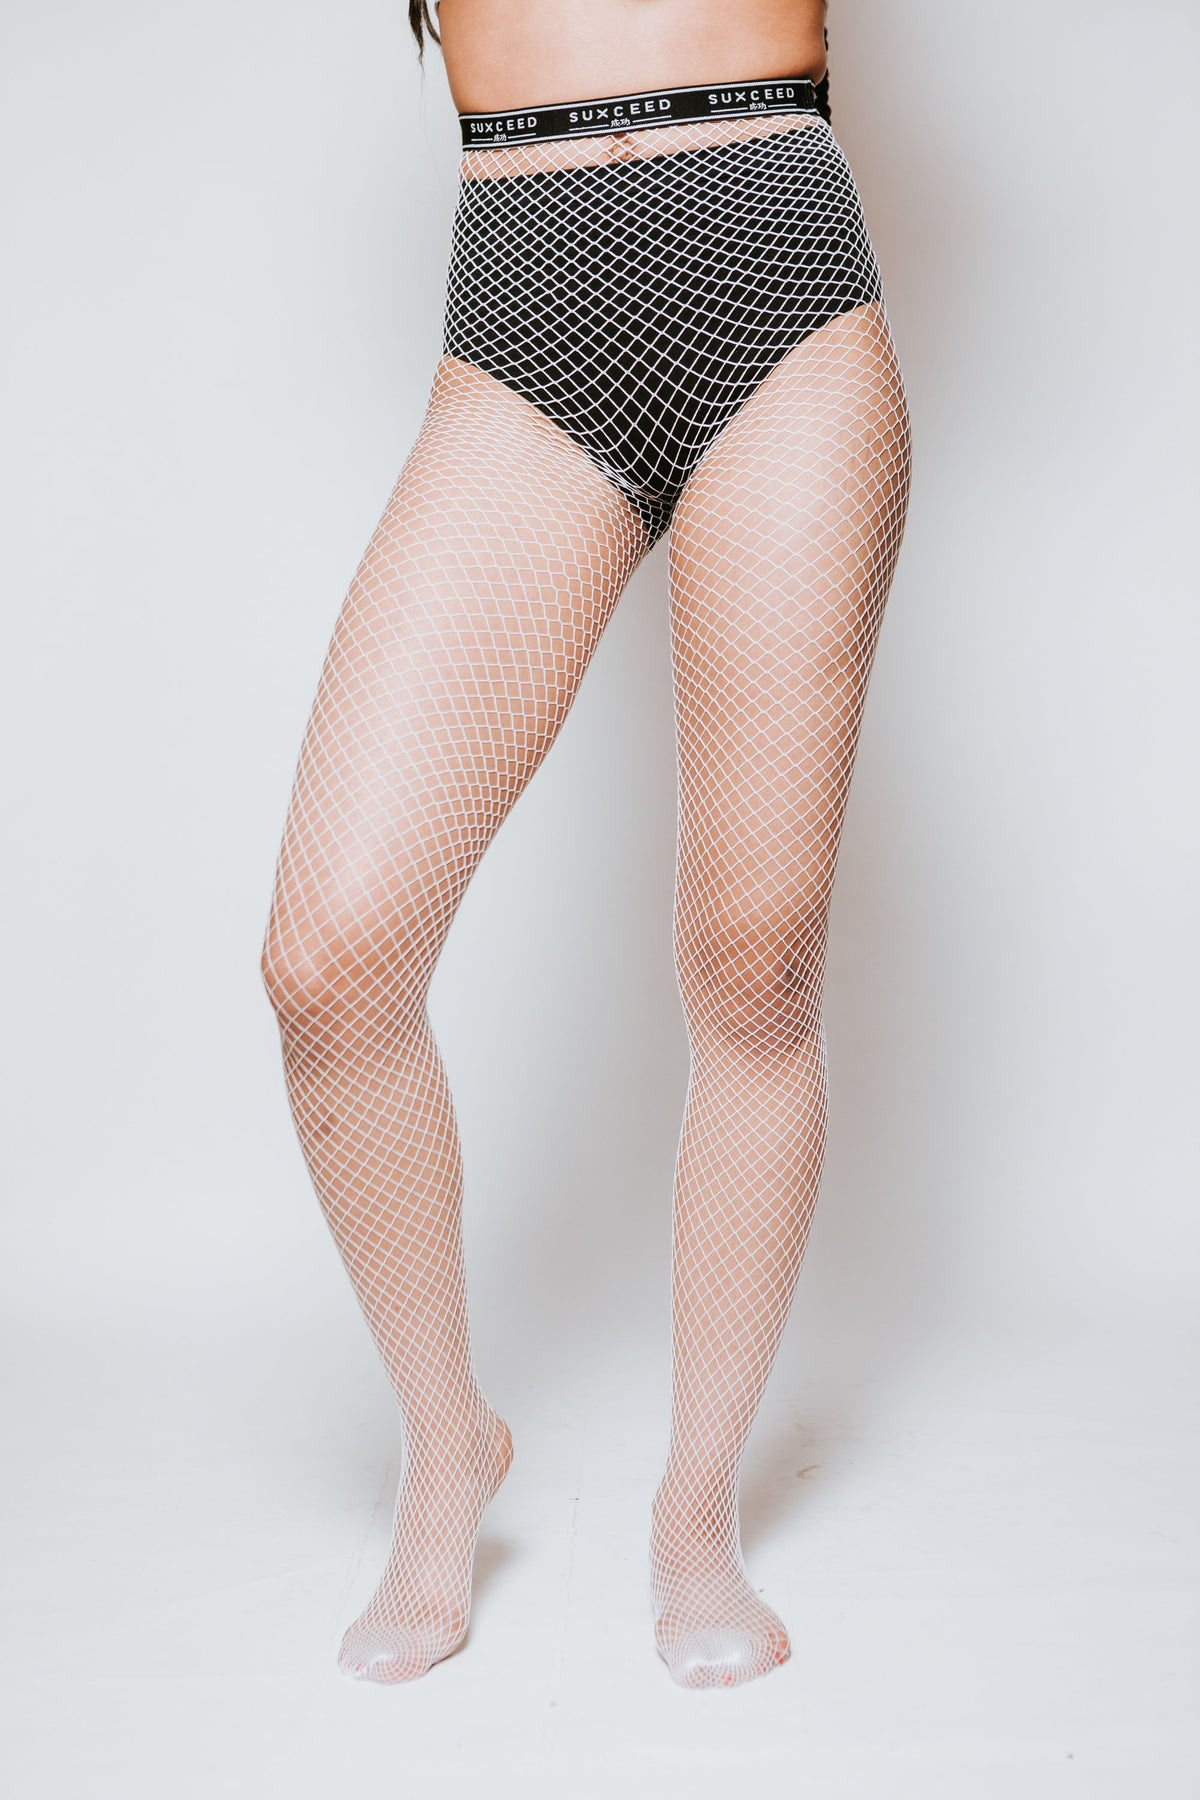 Suxceed Fishnet Tights (4 Styles)